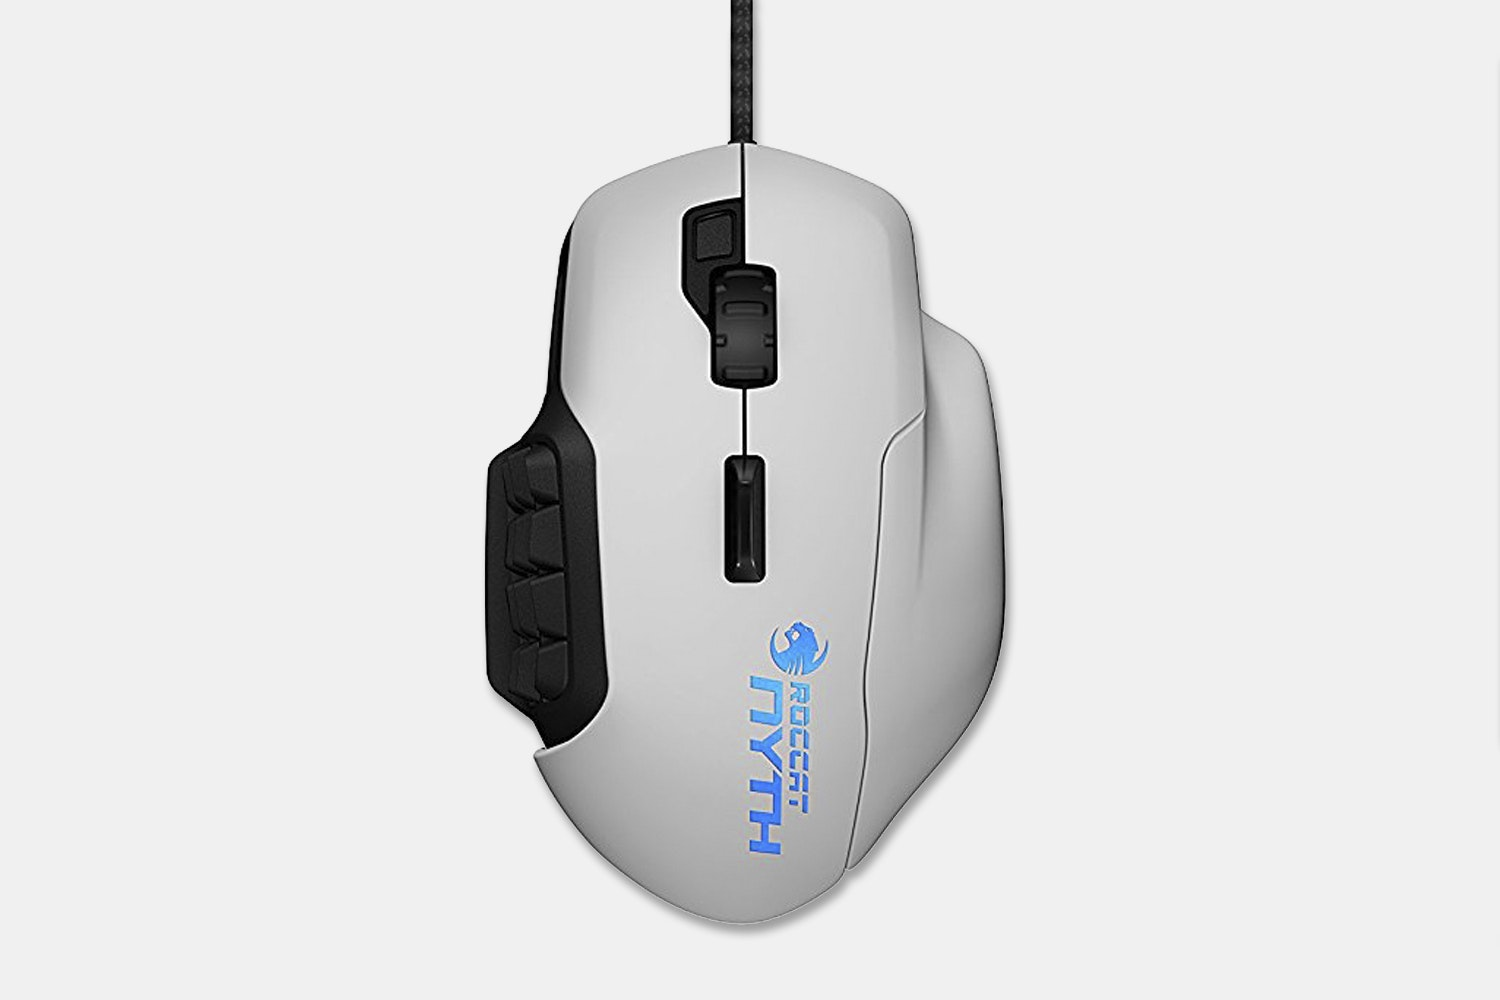 Nyth Modular Mmo Gaming Mouse - White (+ $15)